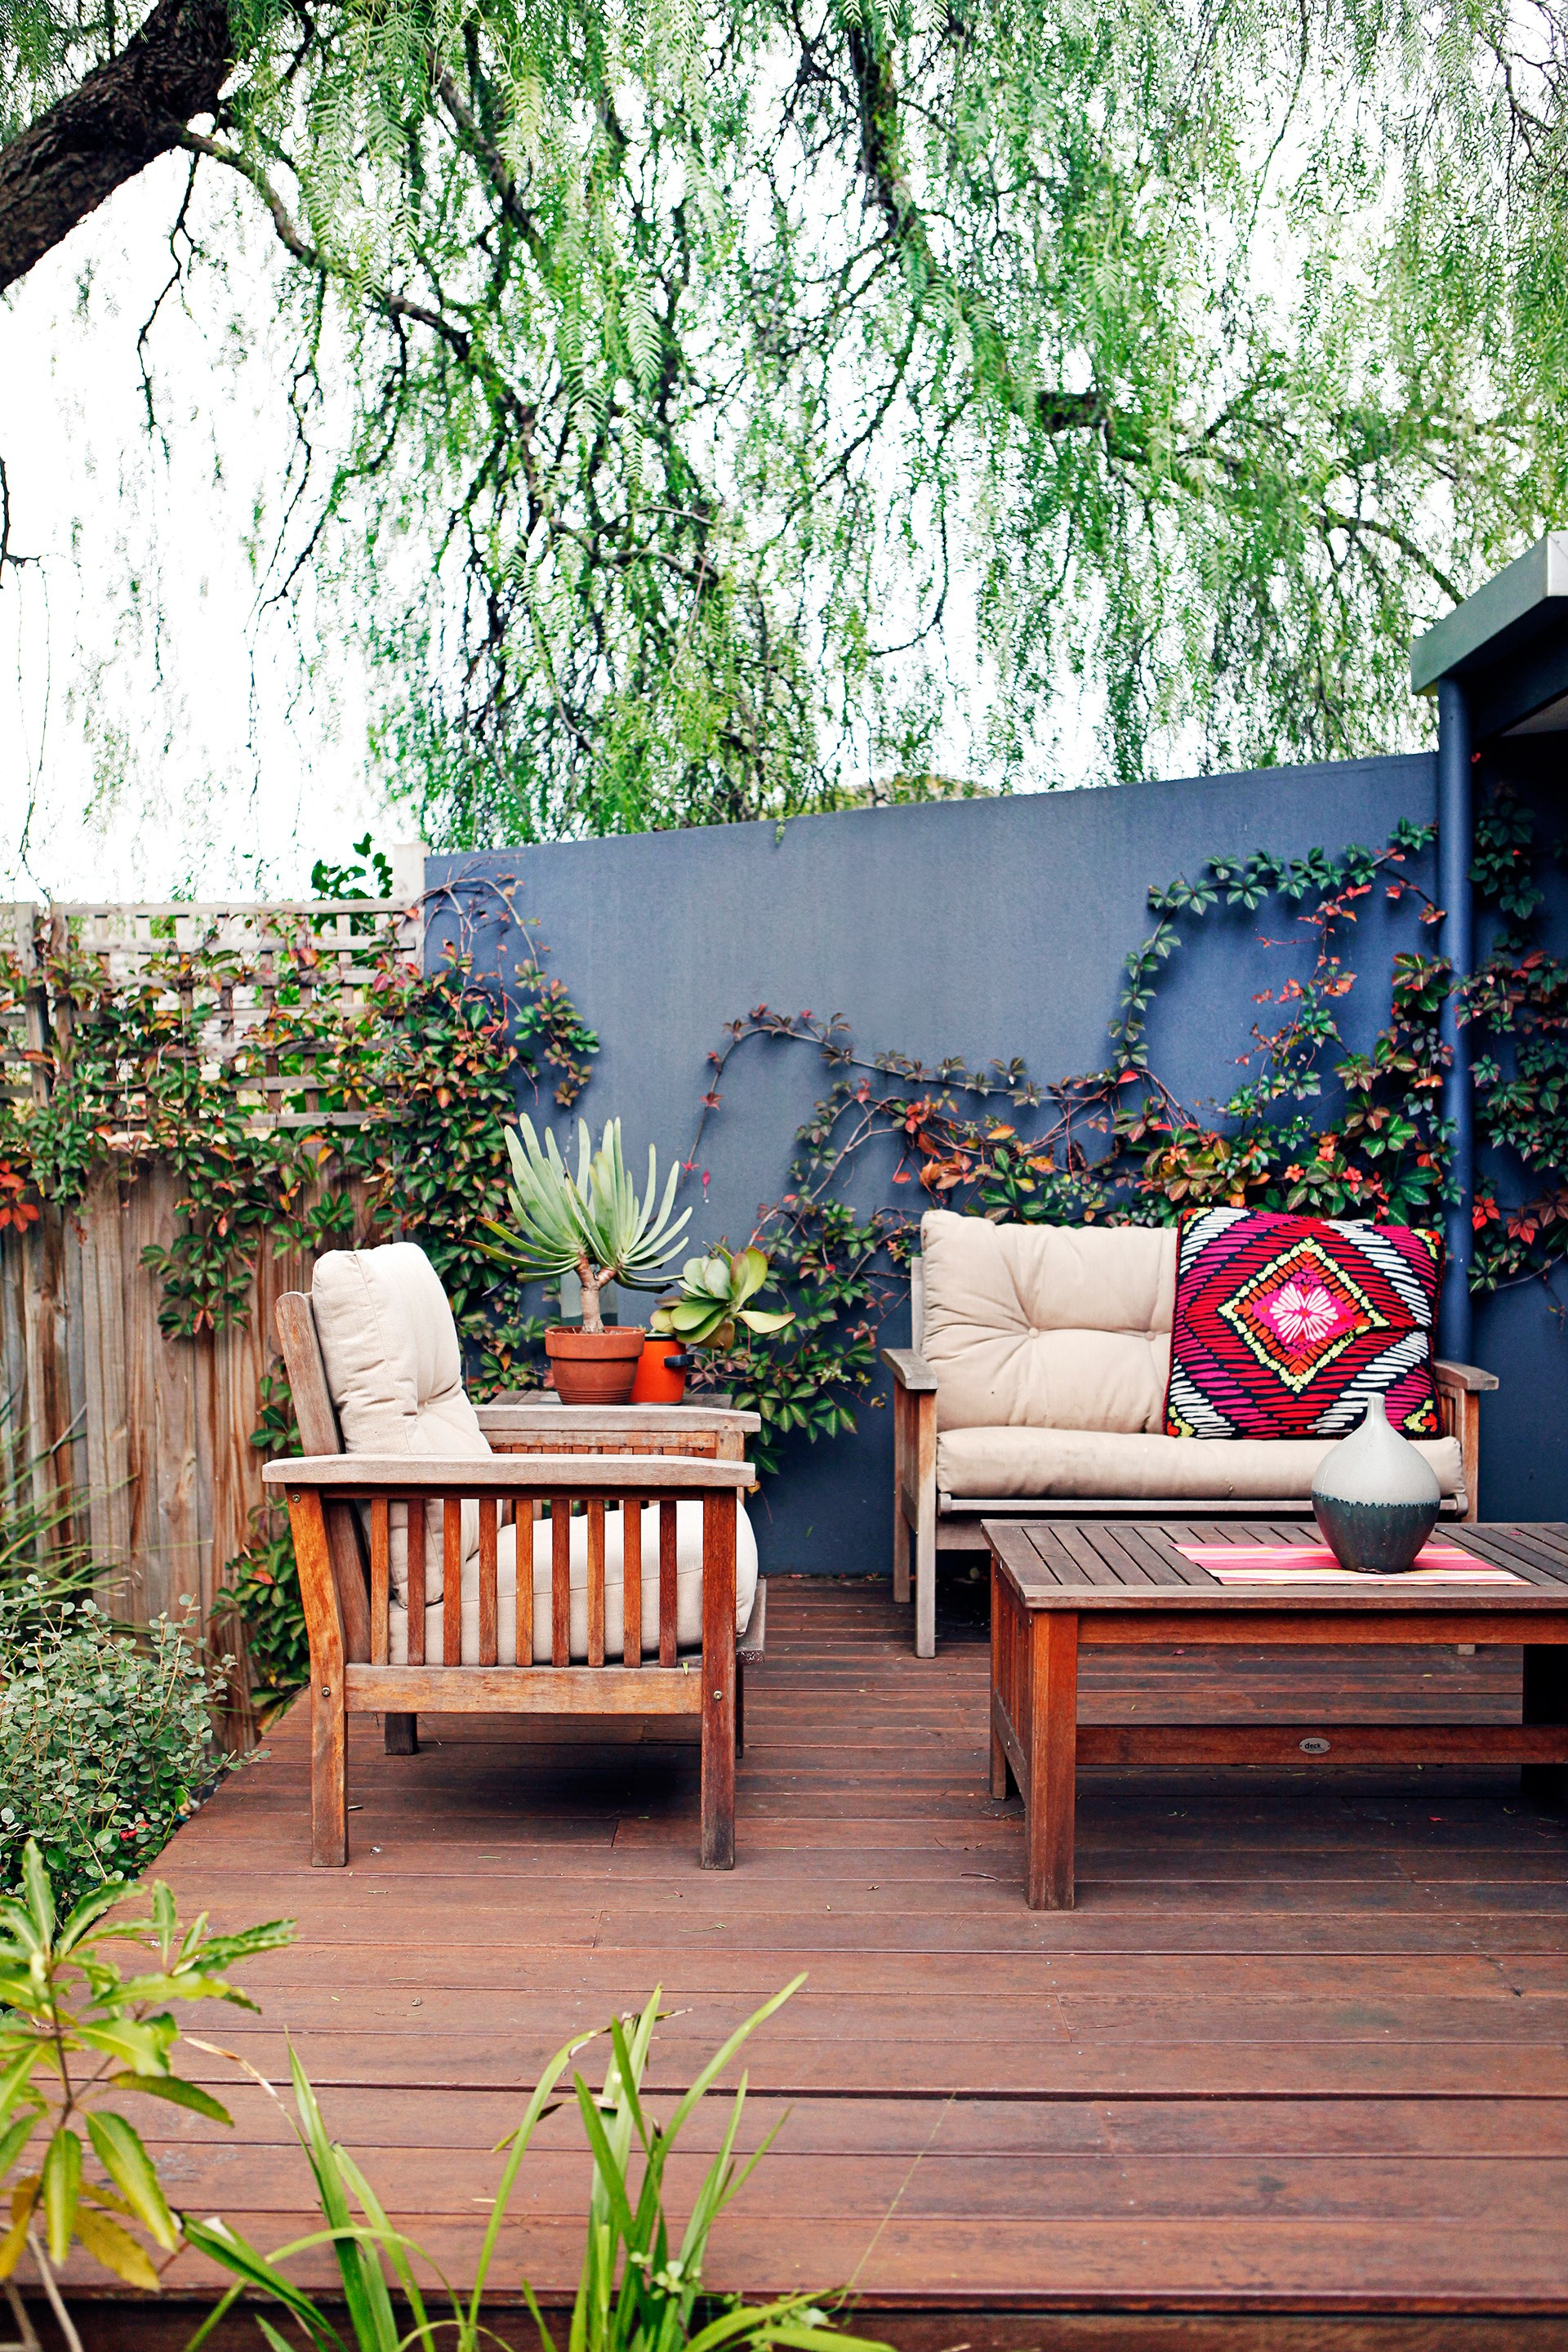 """Climbing plants are your new best friend – they provide lots of lushness for relatively little maintenance and can be used to [screen out](http://www.homestolove.com.au/top-5-screening-plants-for-your-garden-1593